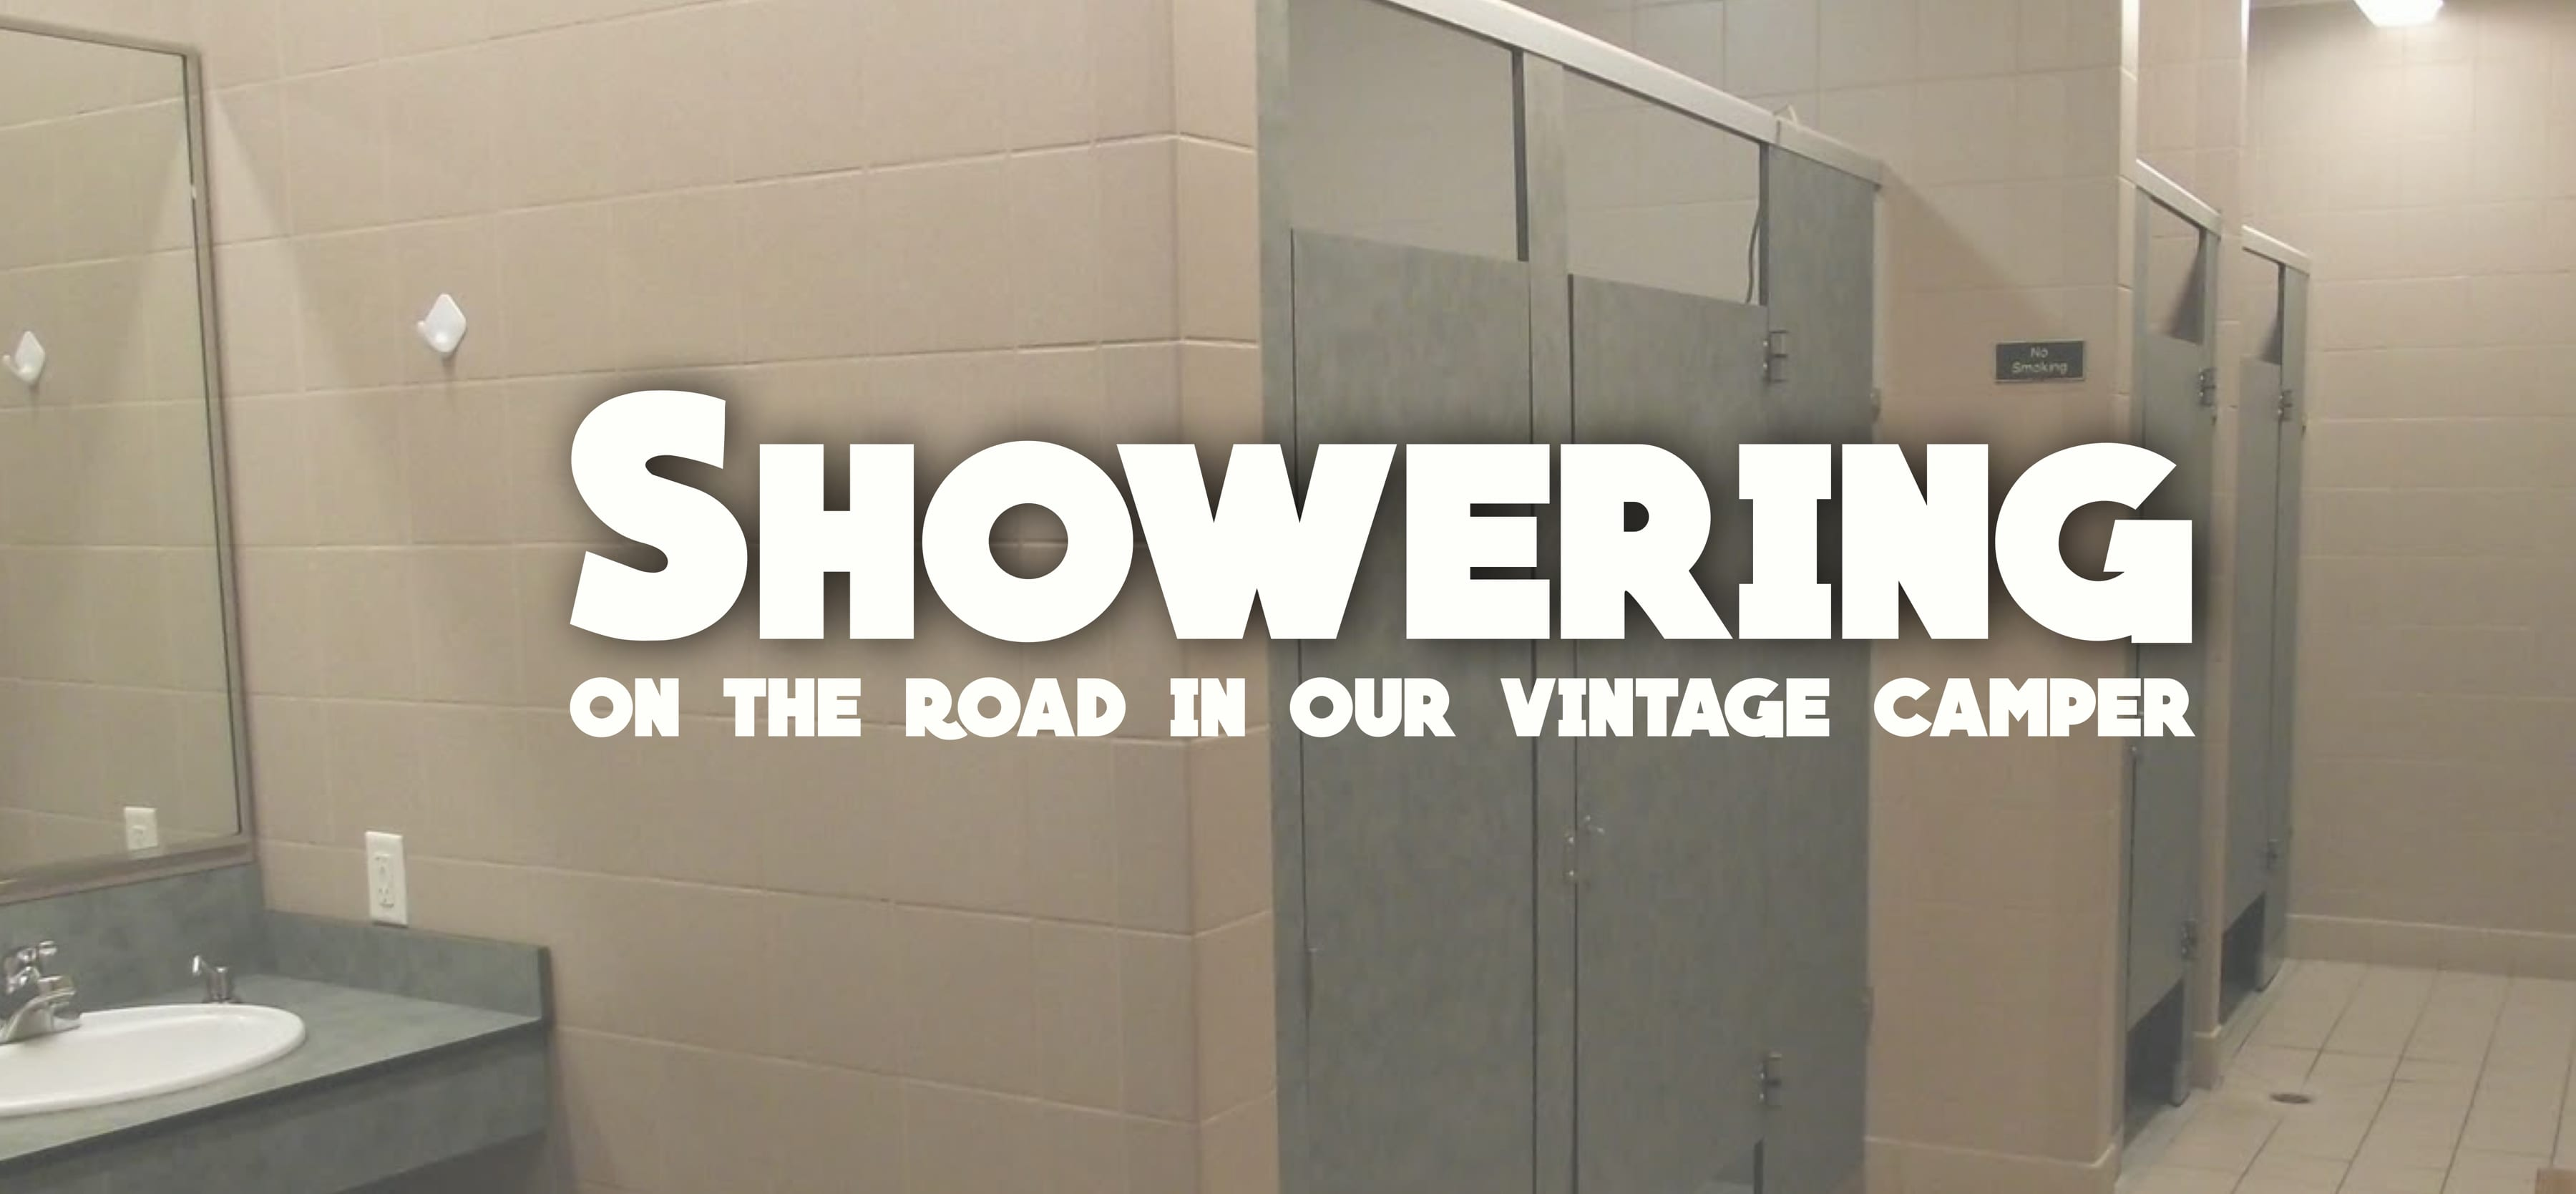 Showering: On The Road in our Vintage Camper